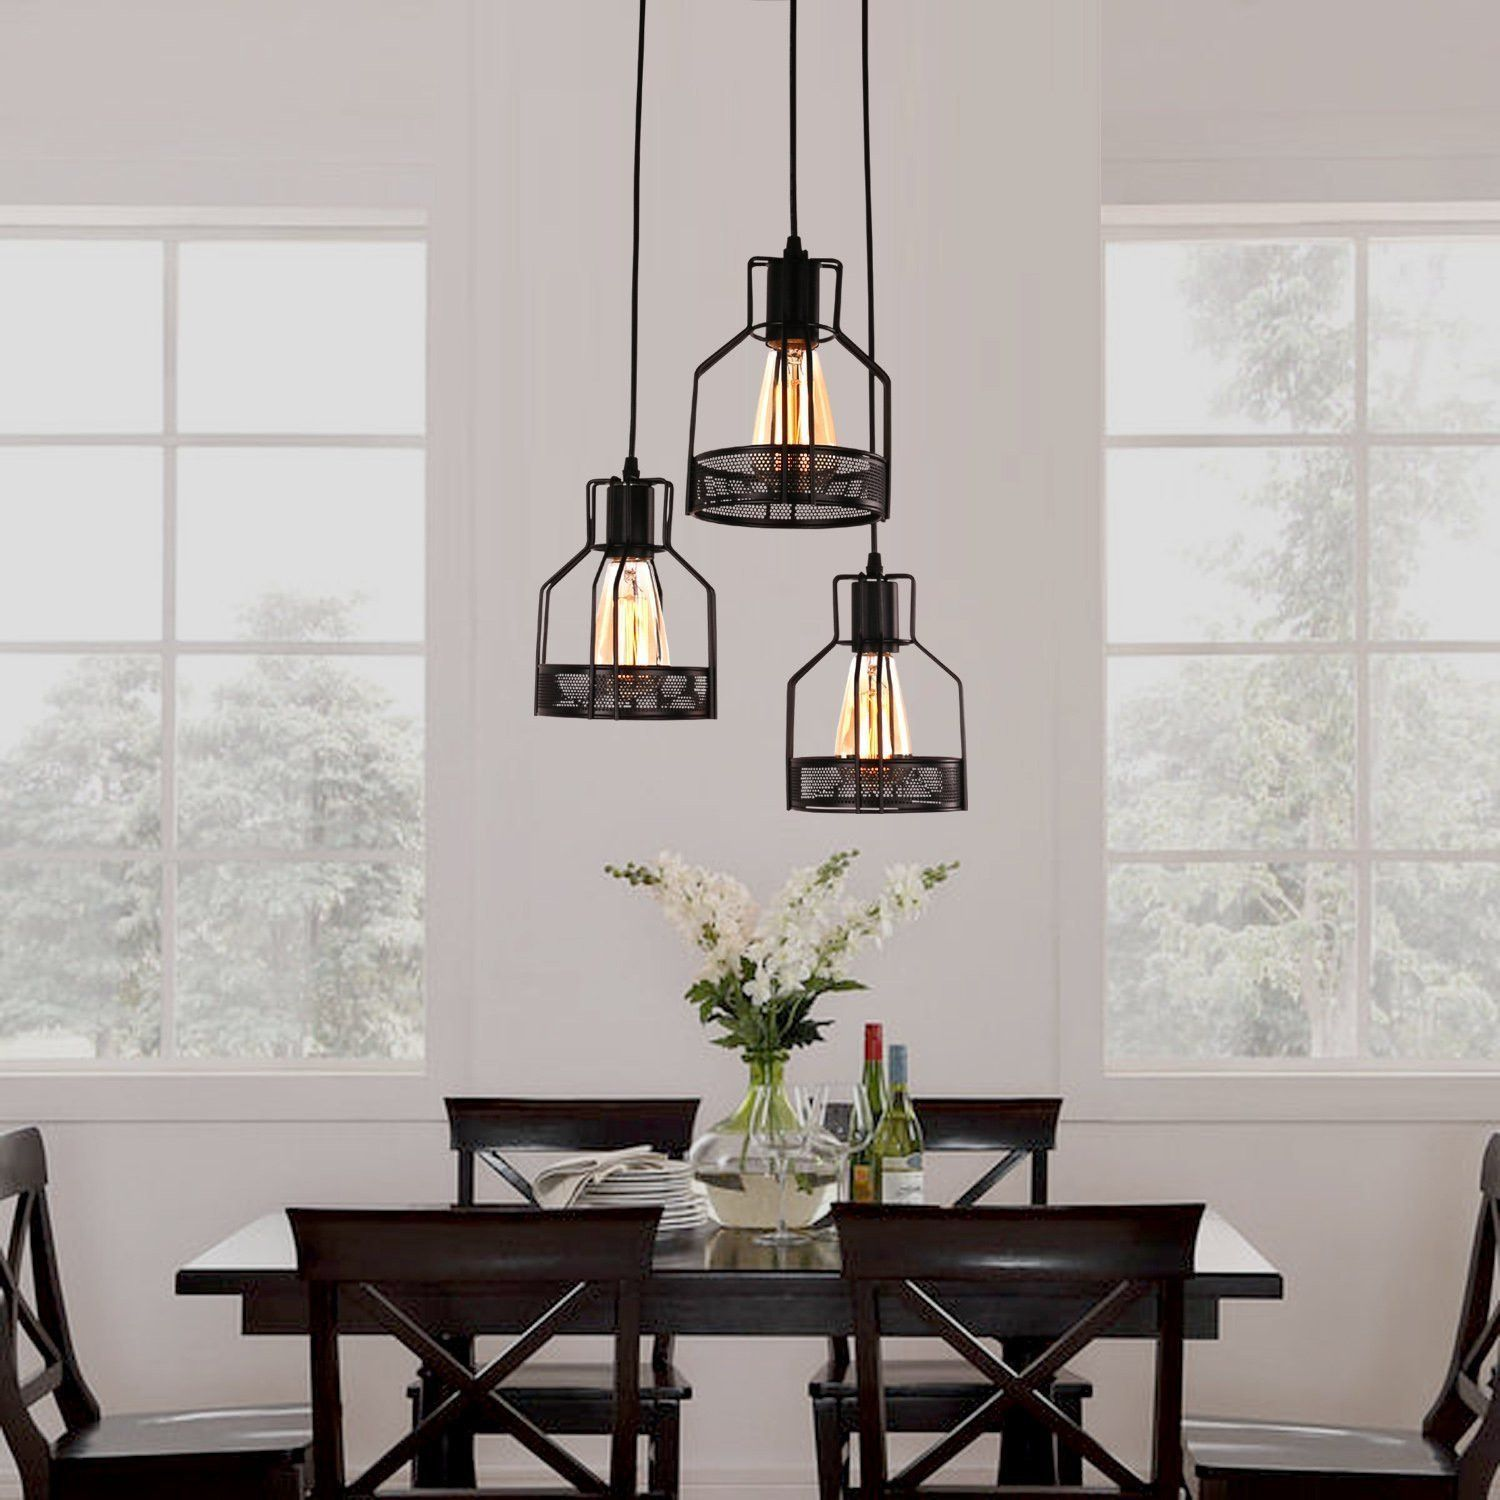 Rustic Black Metal Cage Dining Room Pendant Light with 3